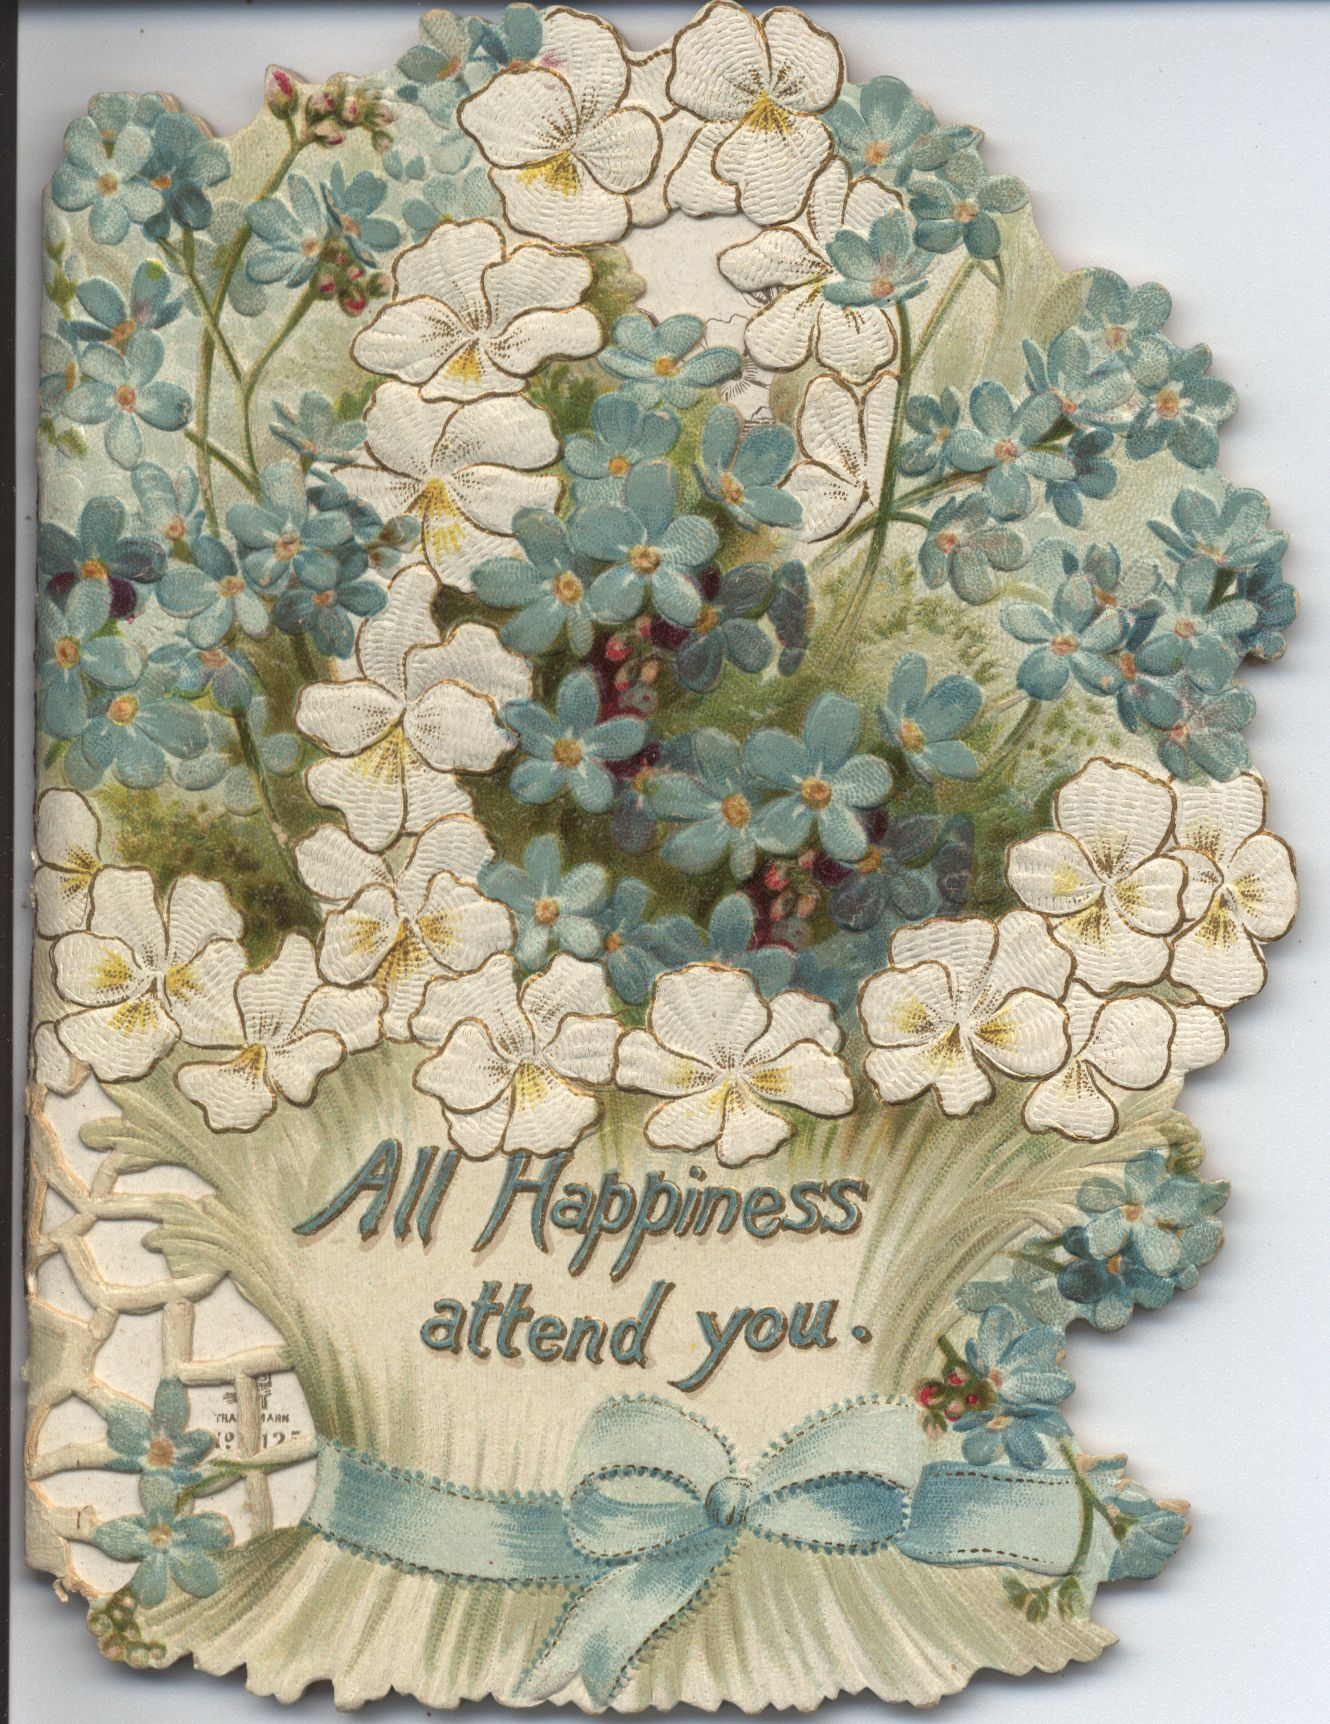 ALL HAPPINESS ATTEND YOU